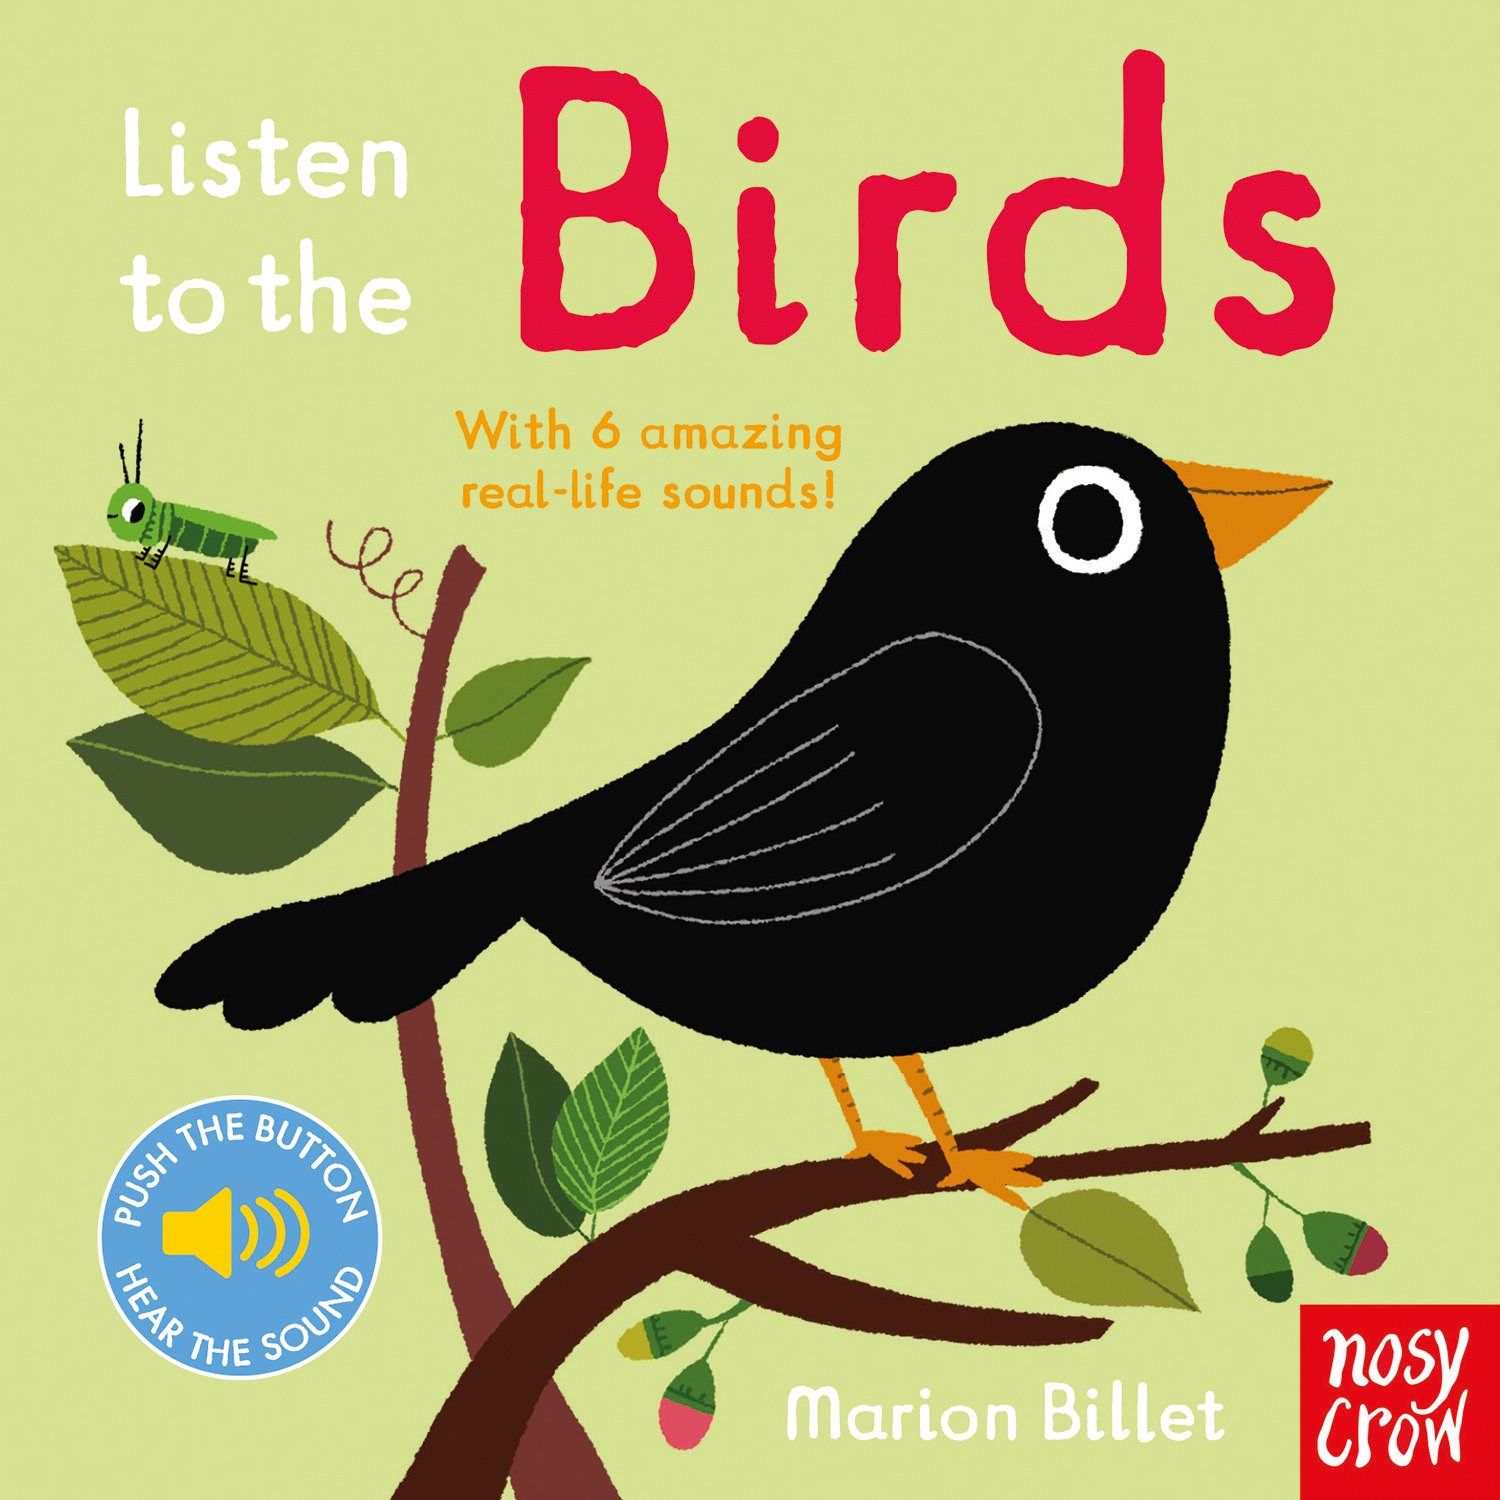 Nosy Crow Listen to the…. series